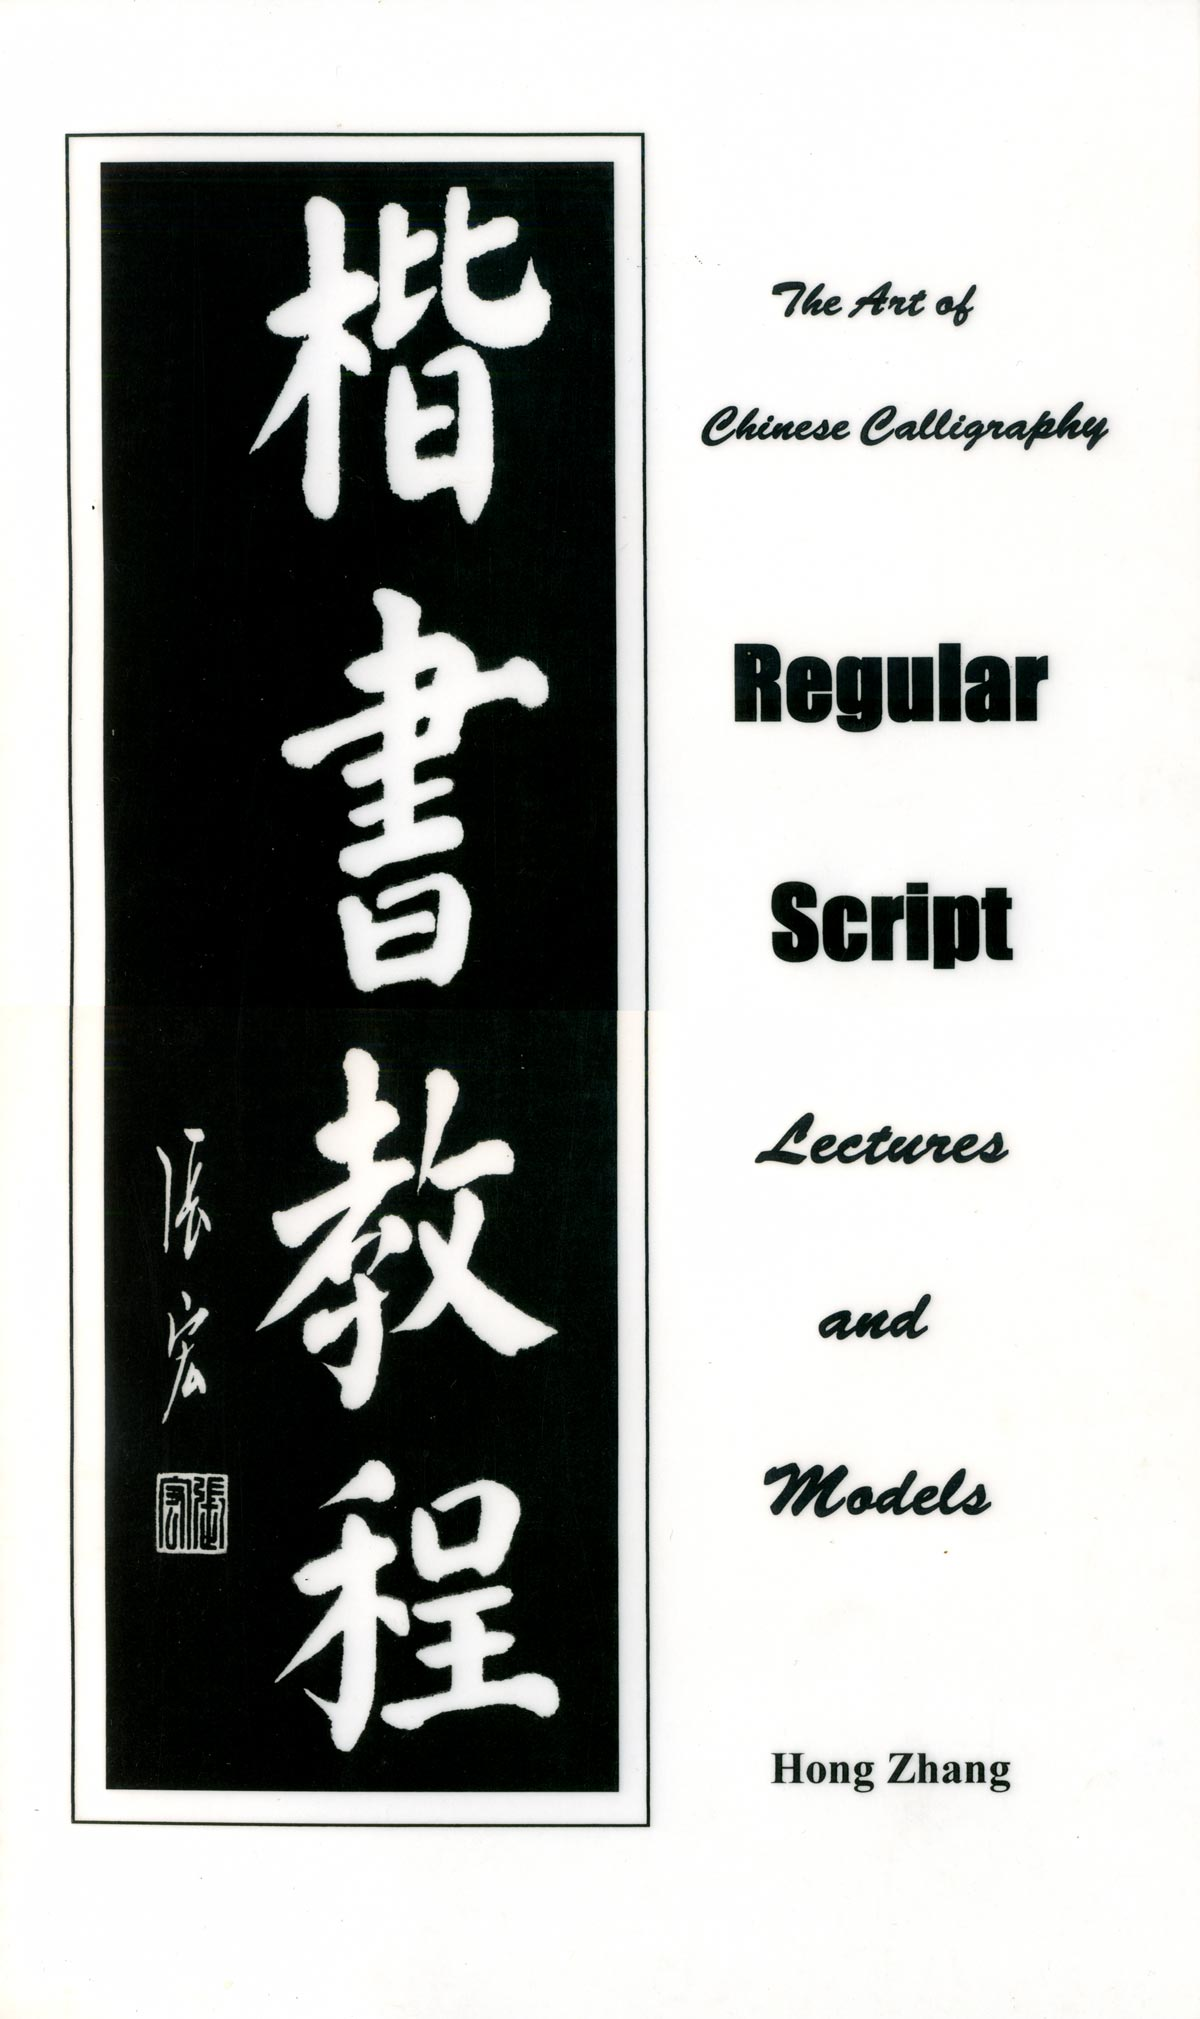 Art of Chinese Calligraphy: Regular Script Lectures and Models